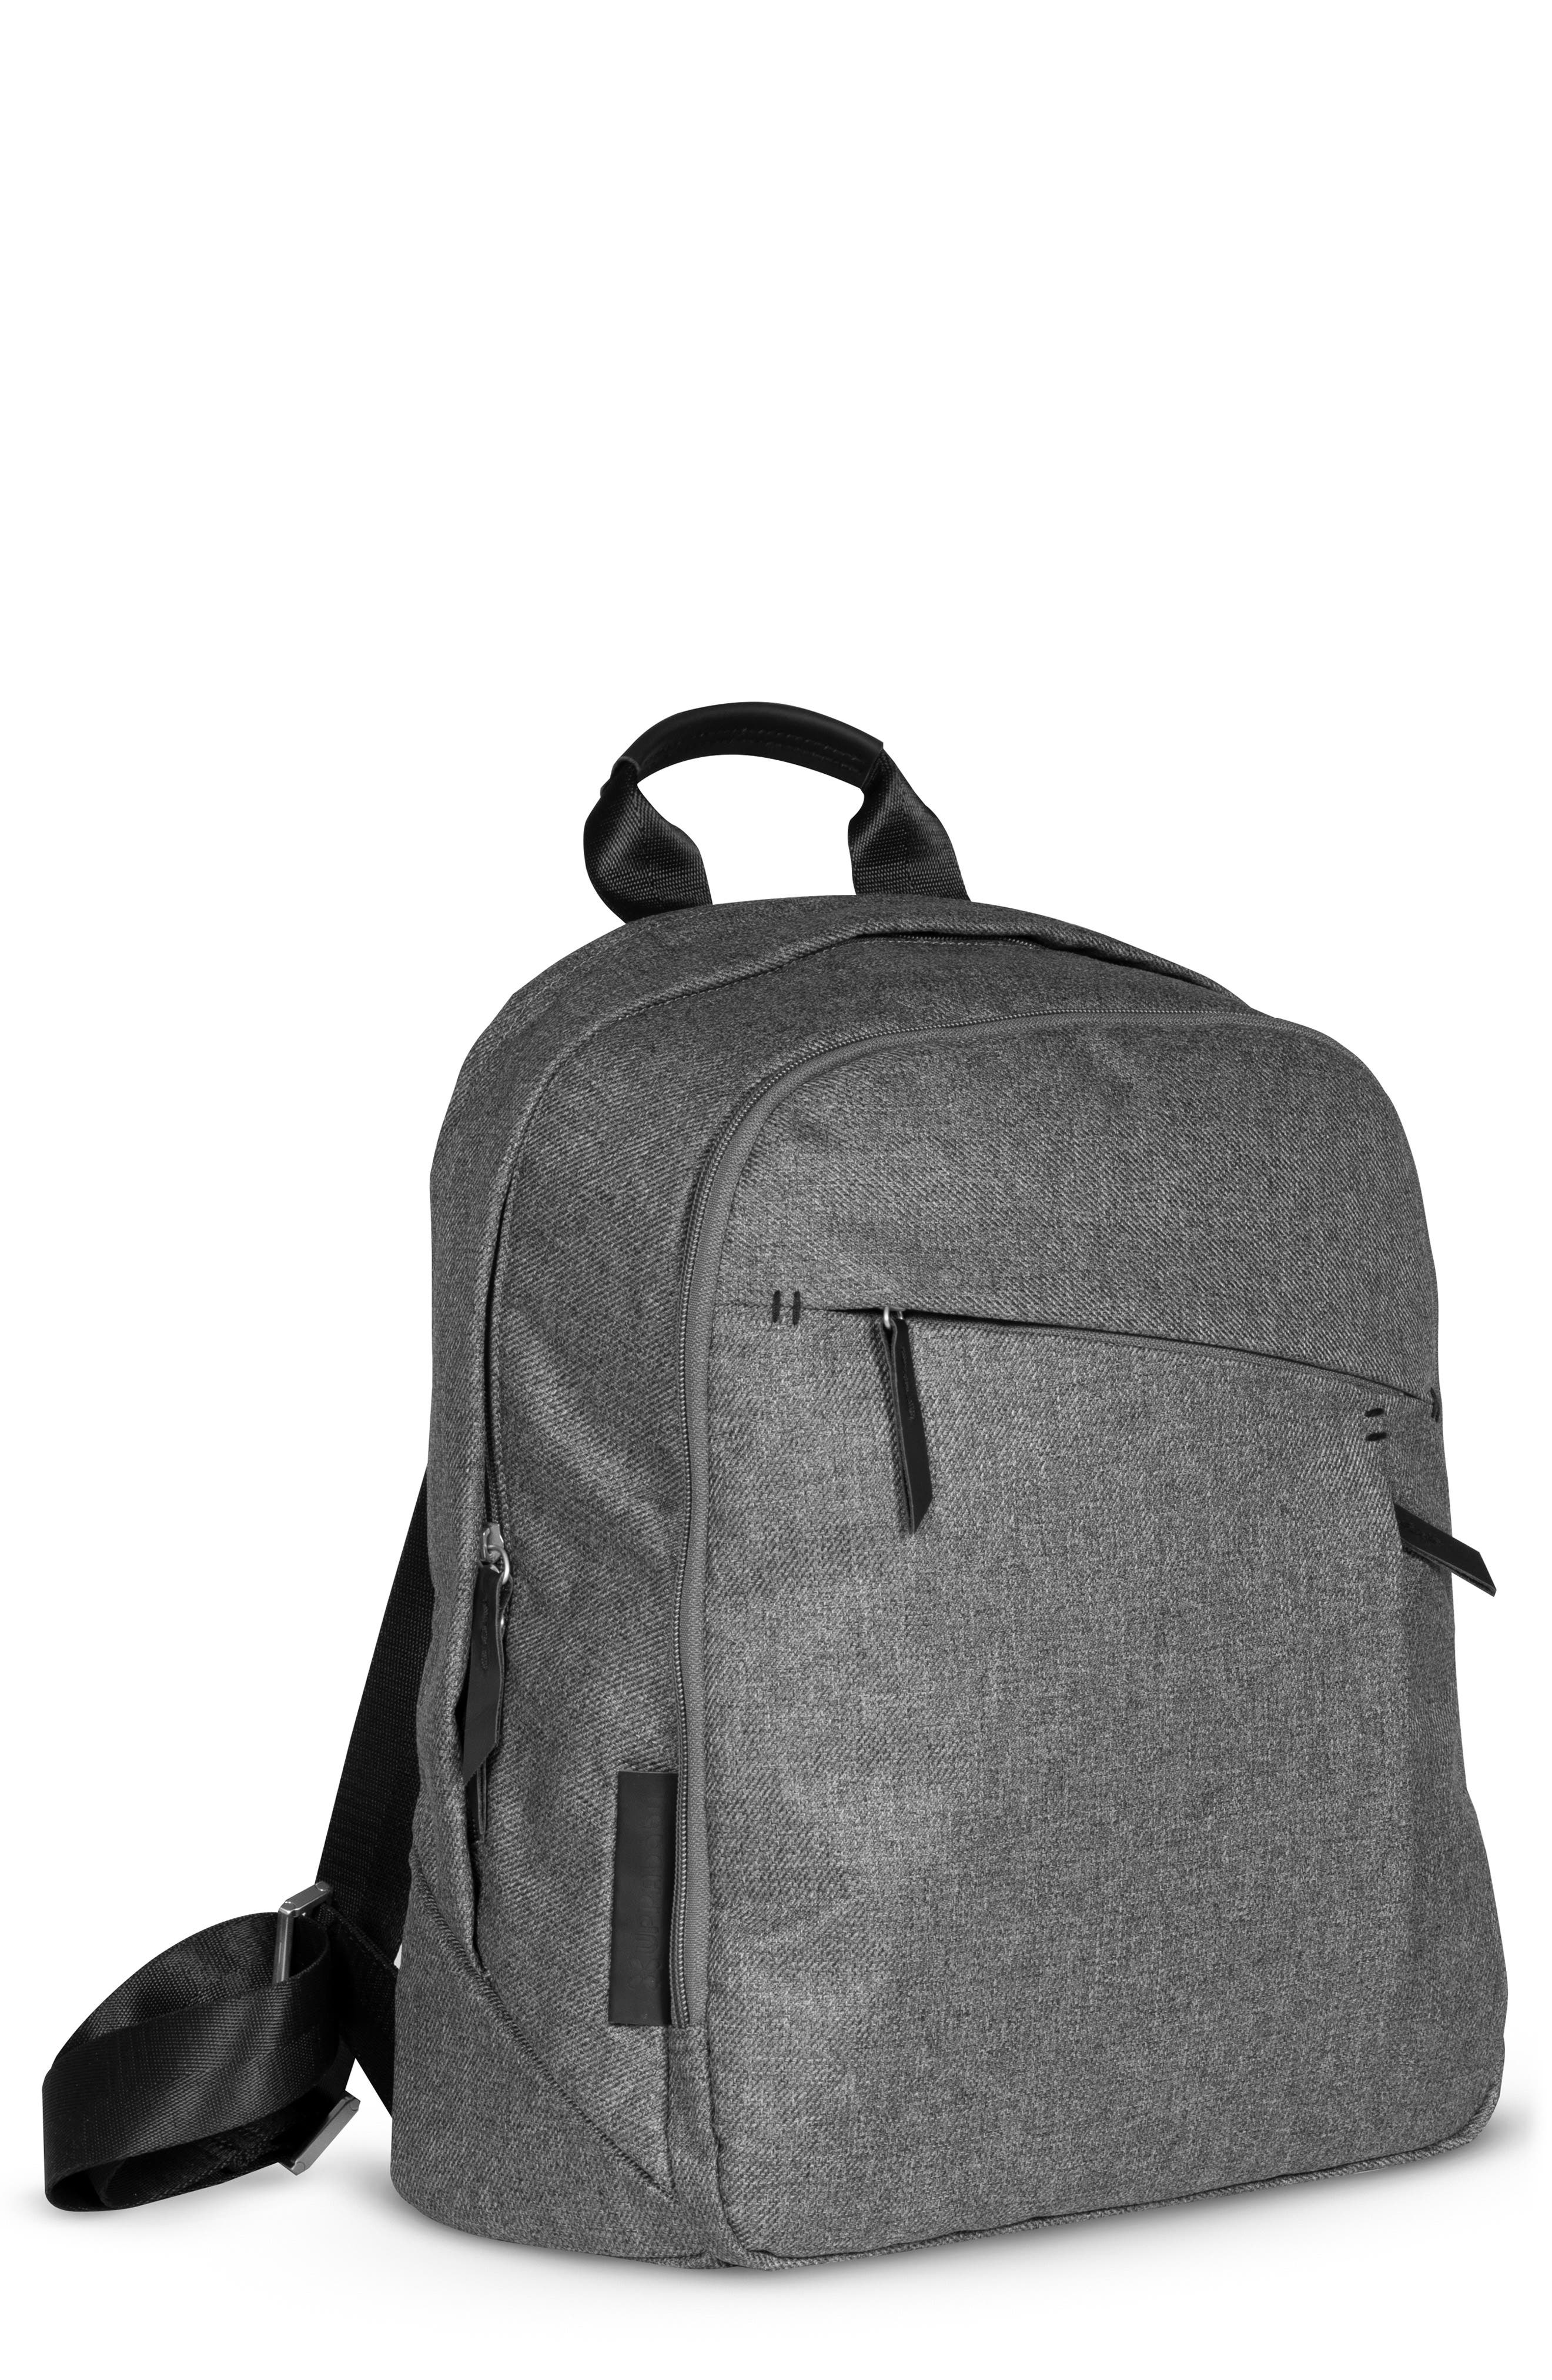 Infant Uppababy Diaper Changing Backpack  Grey